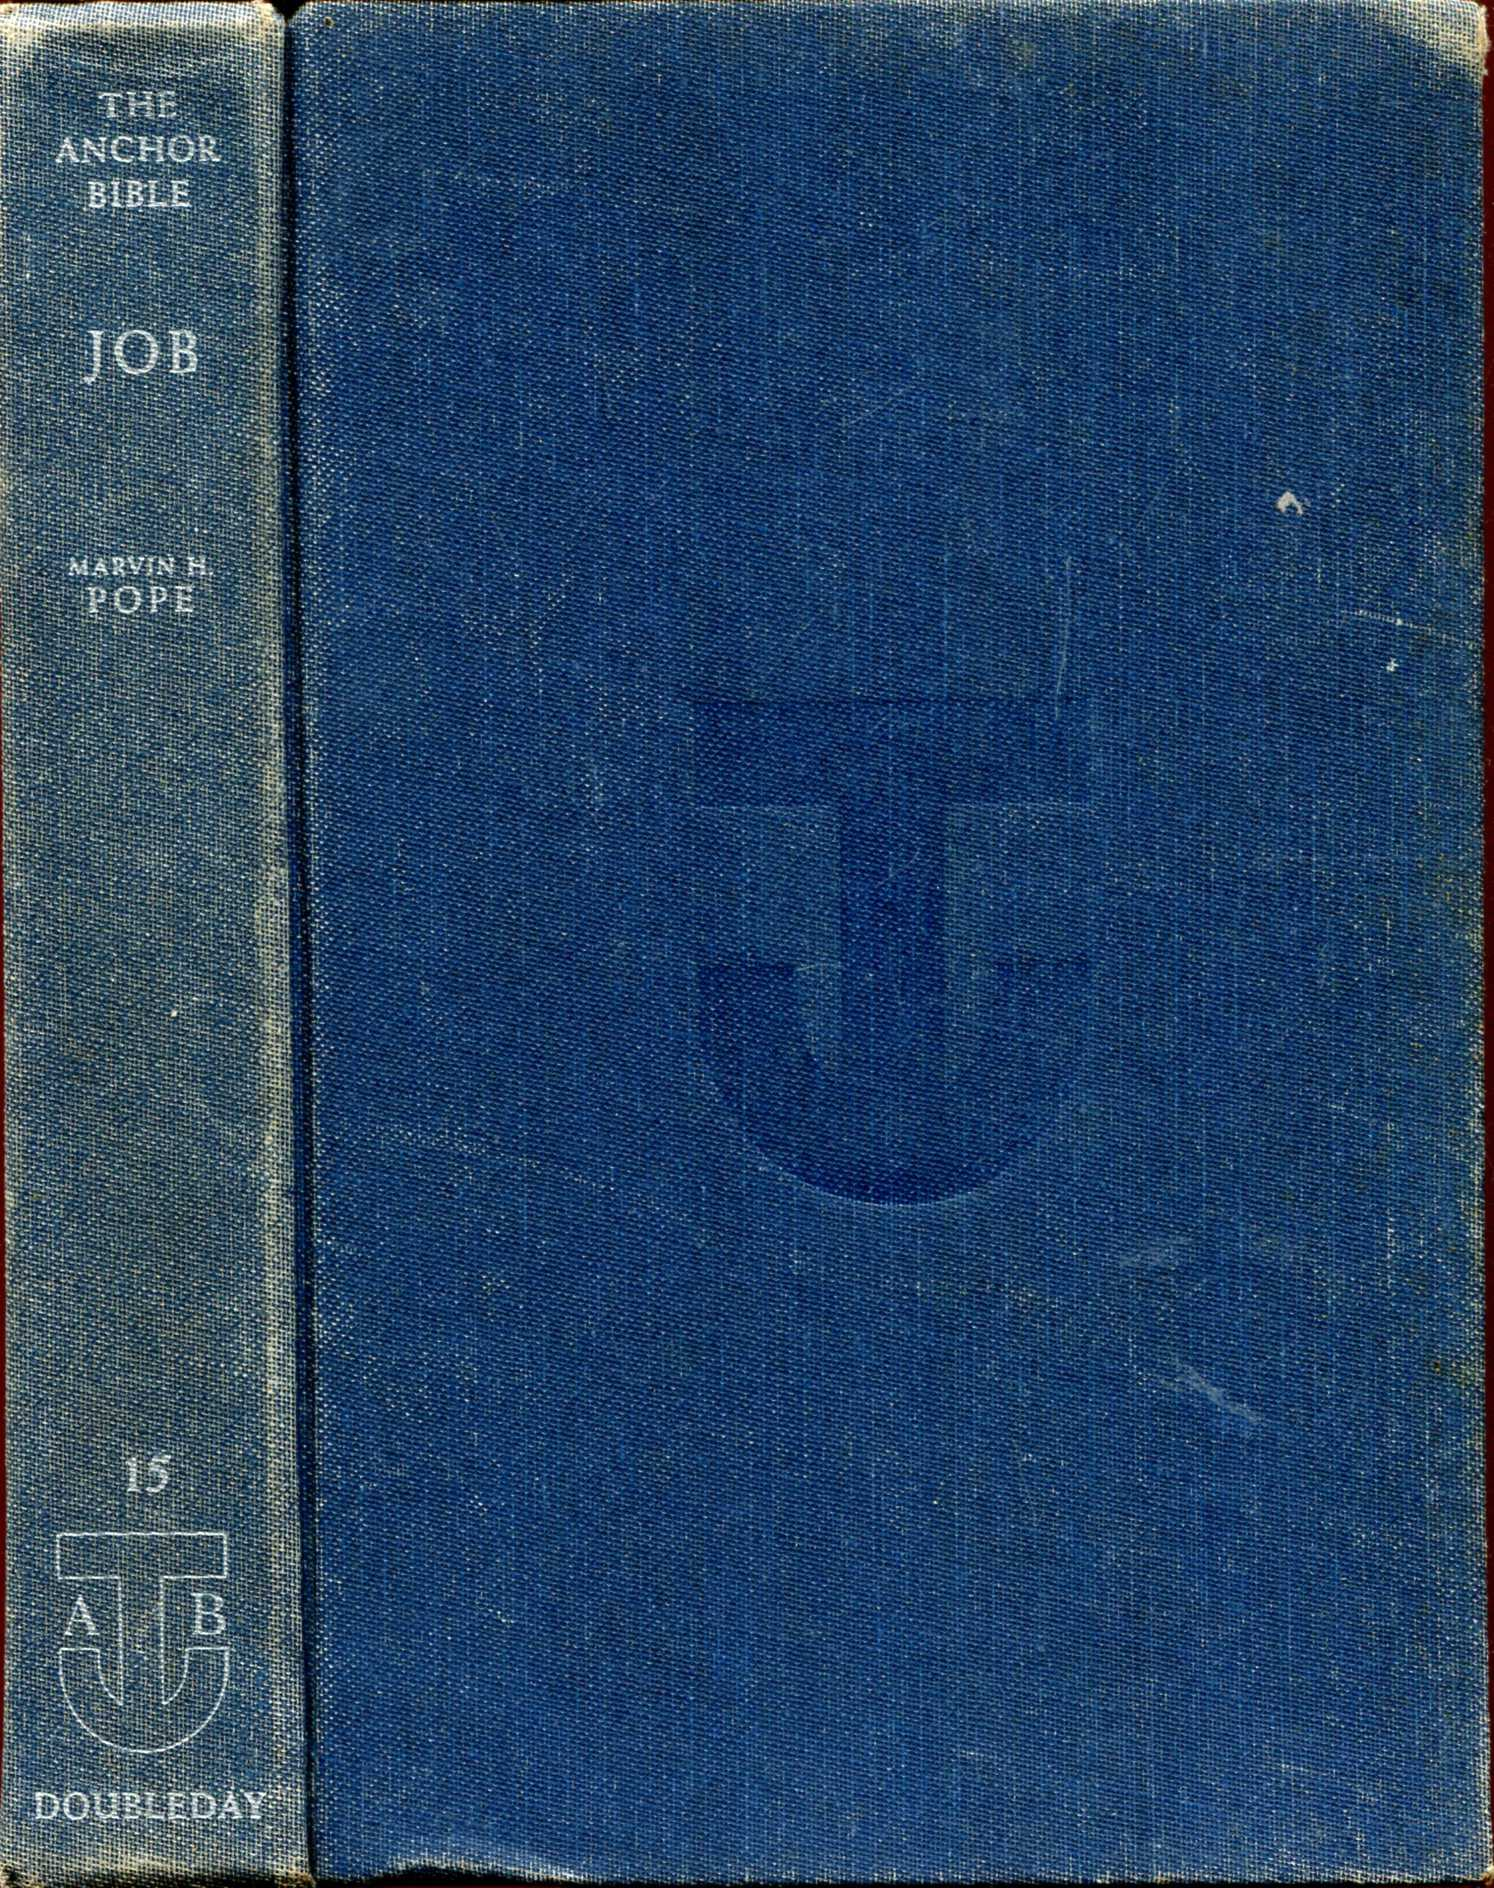 Image for The Anchor Bible, volume 15 : Job, Introduction, Translation, and Notes